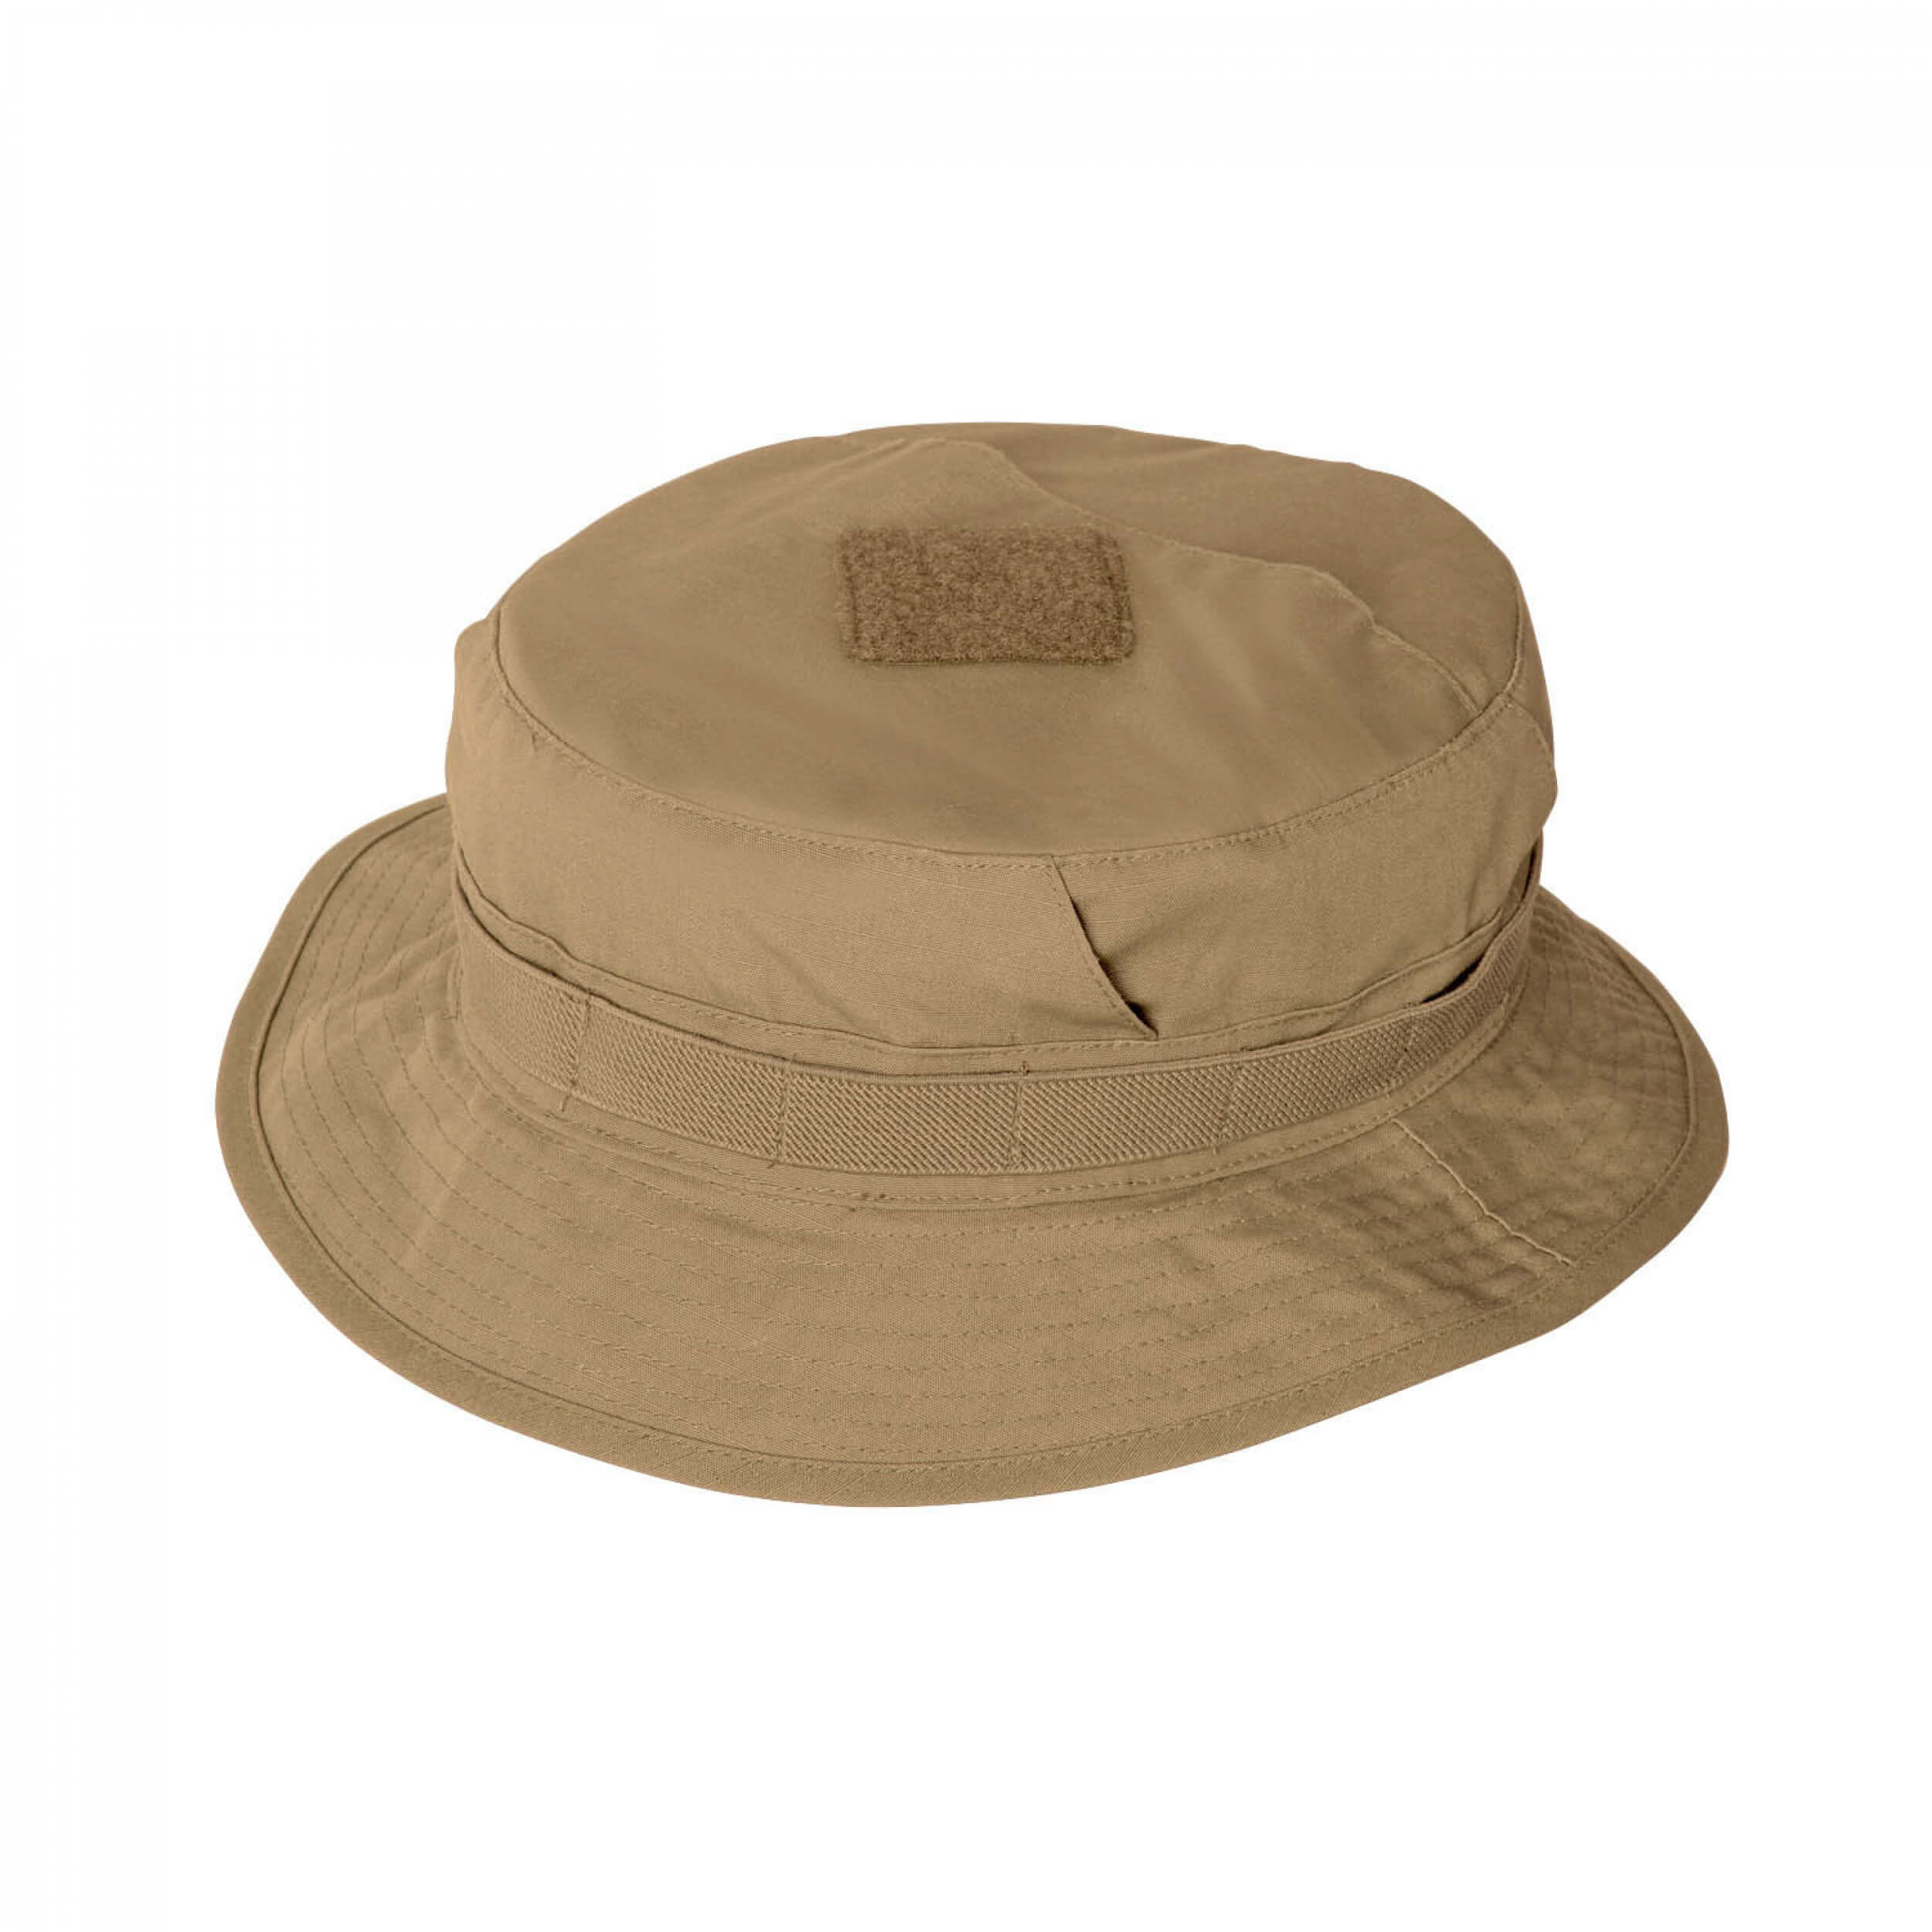 Helikon-Tex CPU HAT POLYCOTTON RIPSTOP - Coyote